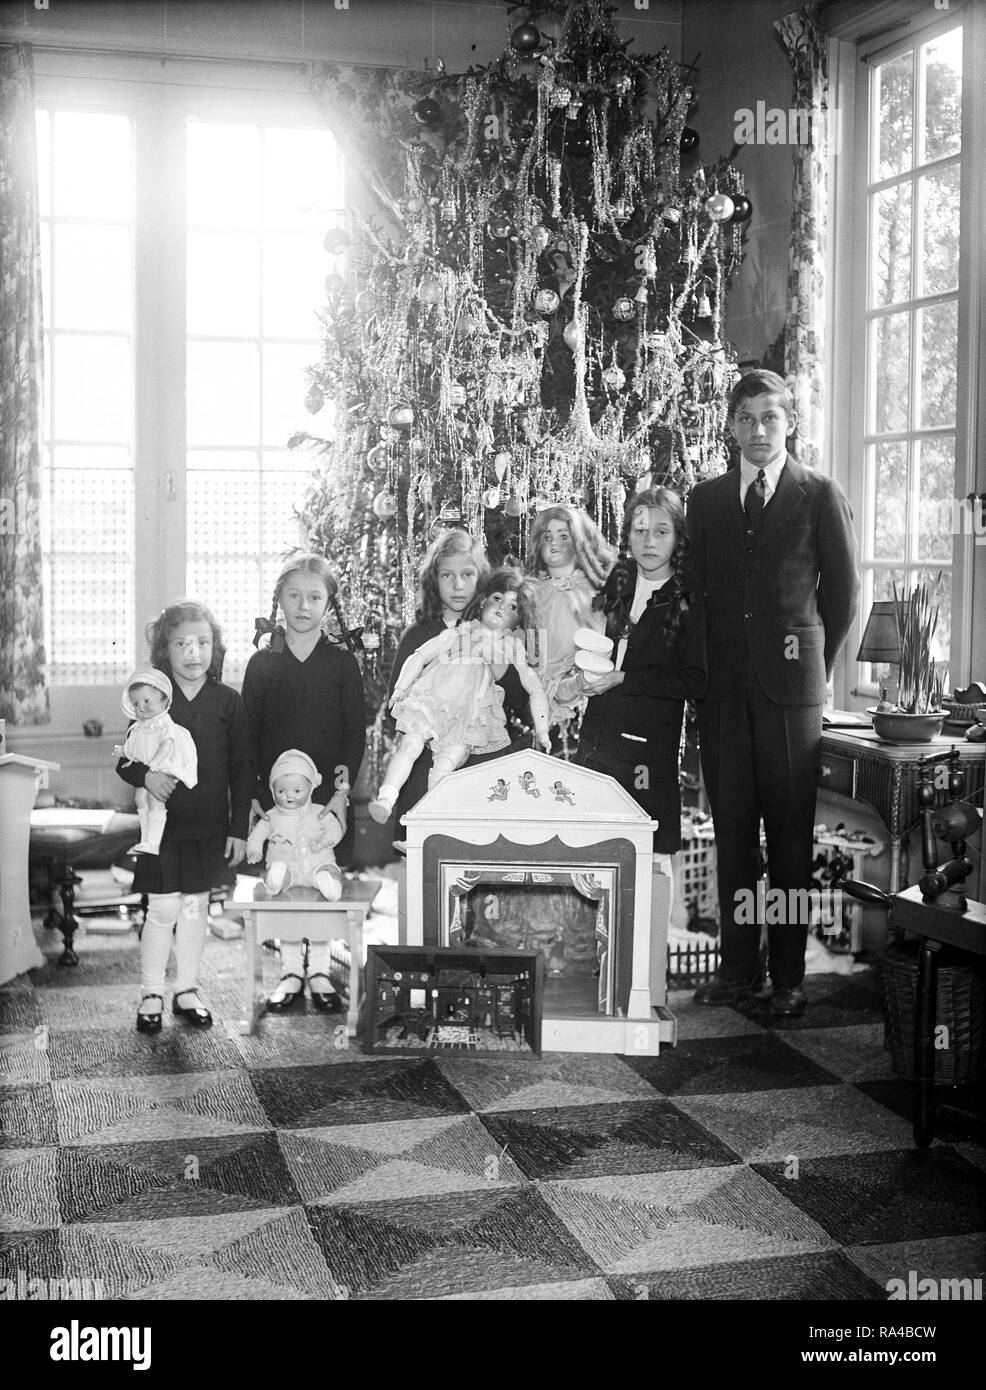 The children of Senator James Davis and Mrs. James J. Davis and their Christmas tree. The youngsters are Jewel, Joan, Jean, Jane and James, Jr. ca. 1930 - Stock Image